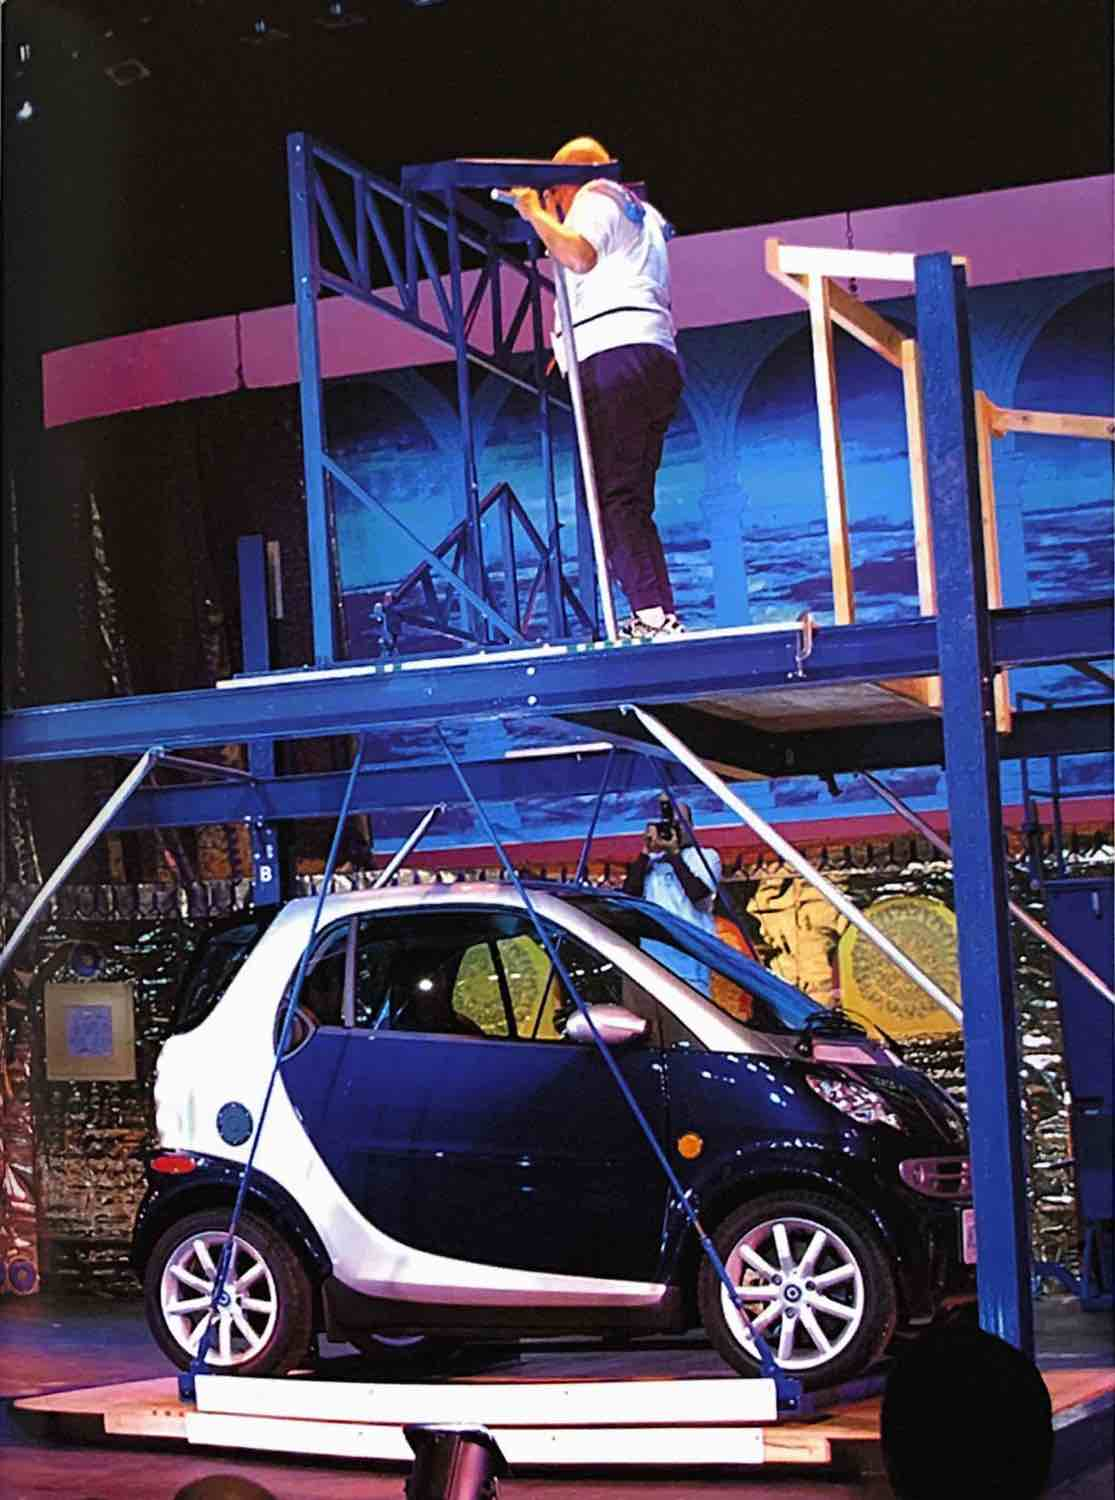 <b> Smart Car lift </b>- At the culmination of a public weightlifting exhibition in New York (November 2004), Sri Chinmoy lifted a car weighing the total of 2,229 lbs (1,012 kg) using a standing calf raise machine with a suspended platform beneath.